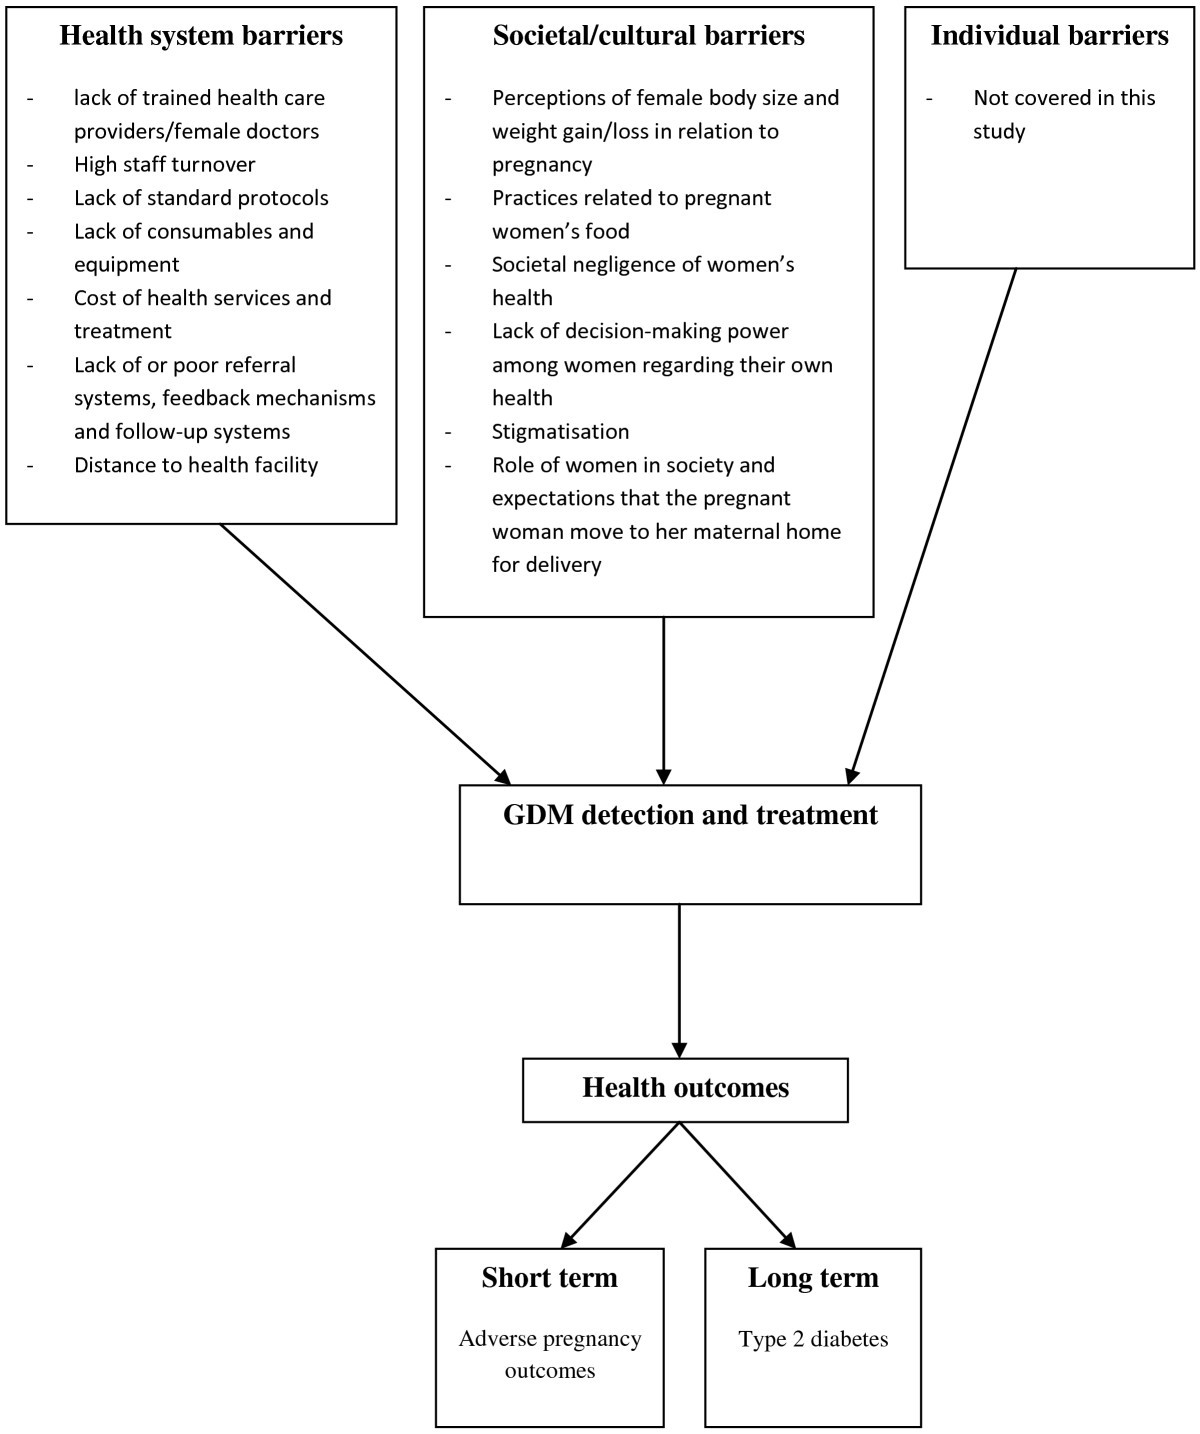 Health System And Societal Barriers For Gestational Diabetes